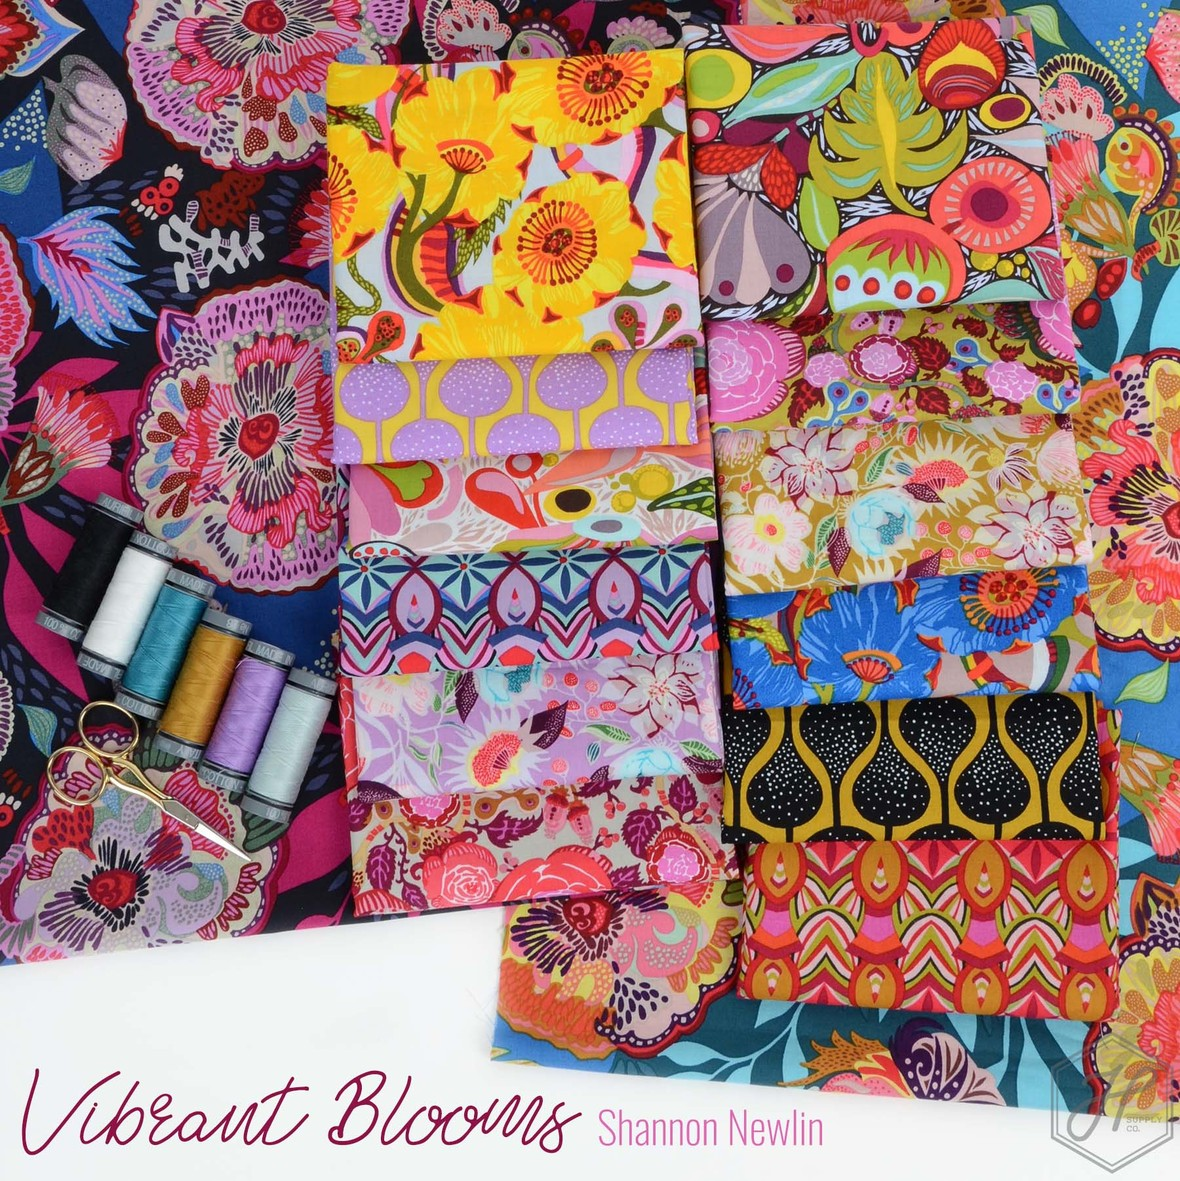 Vibrant Blooms from Shannon Newlin at Hawthorne Supply Co